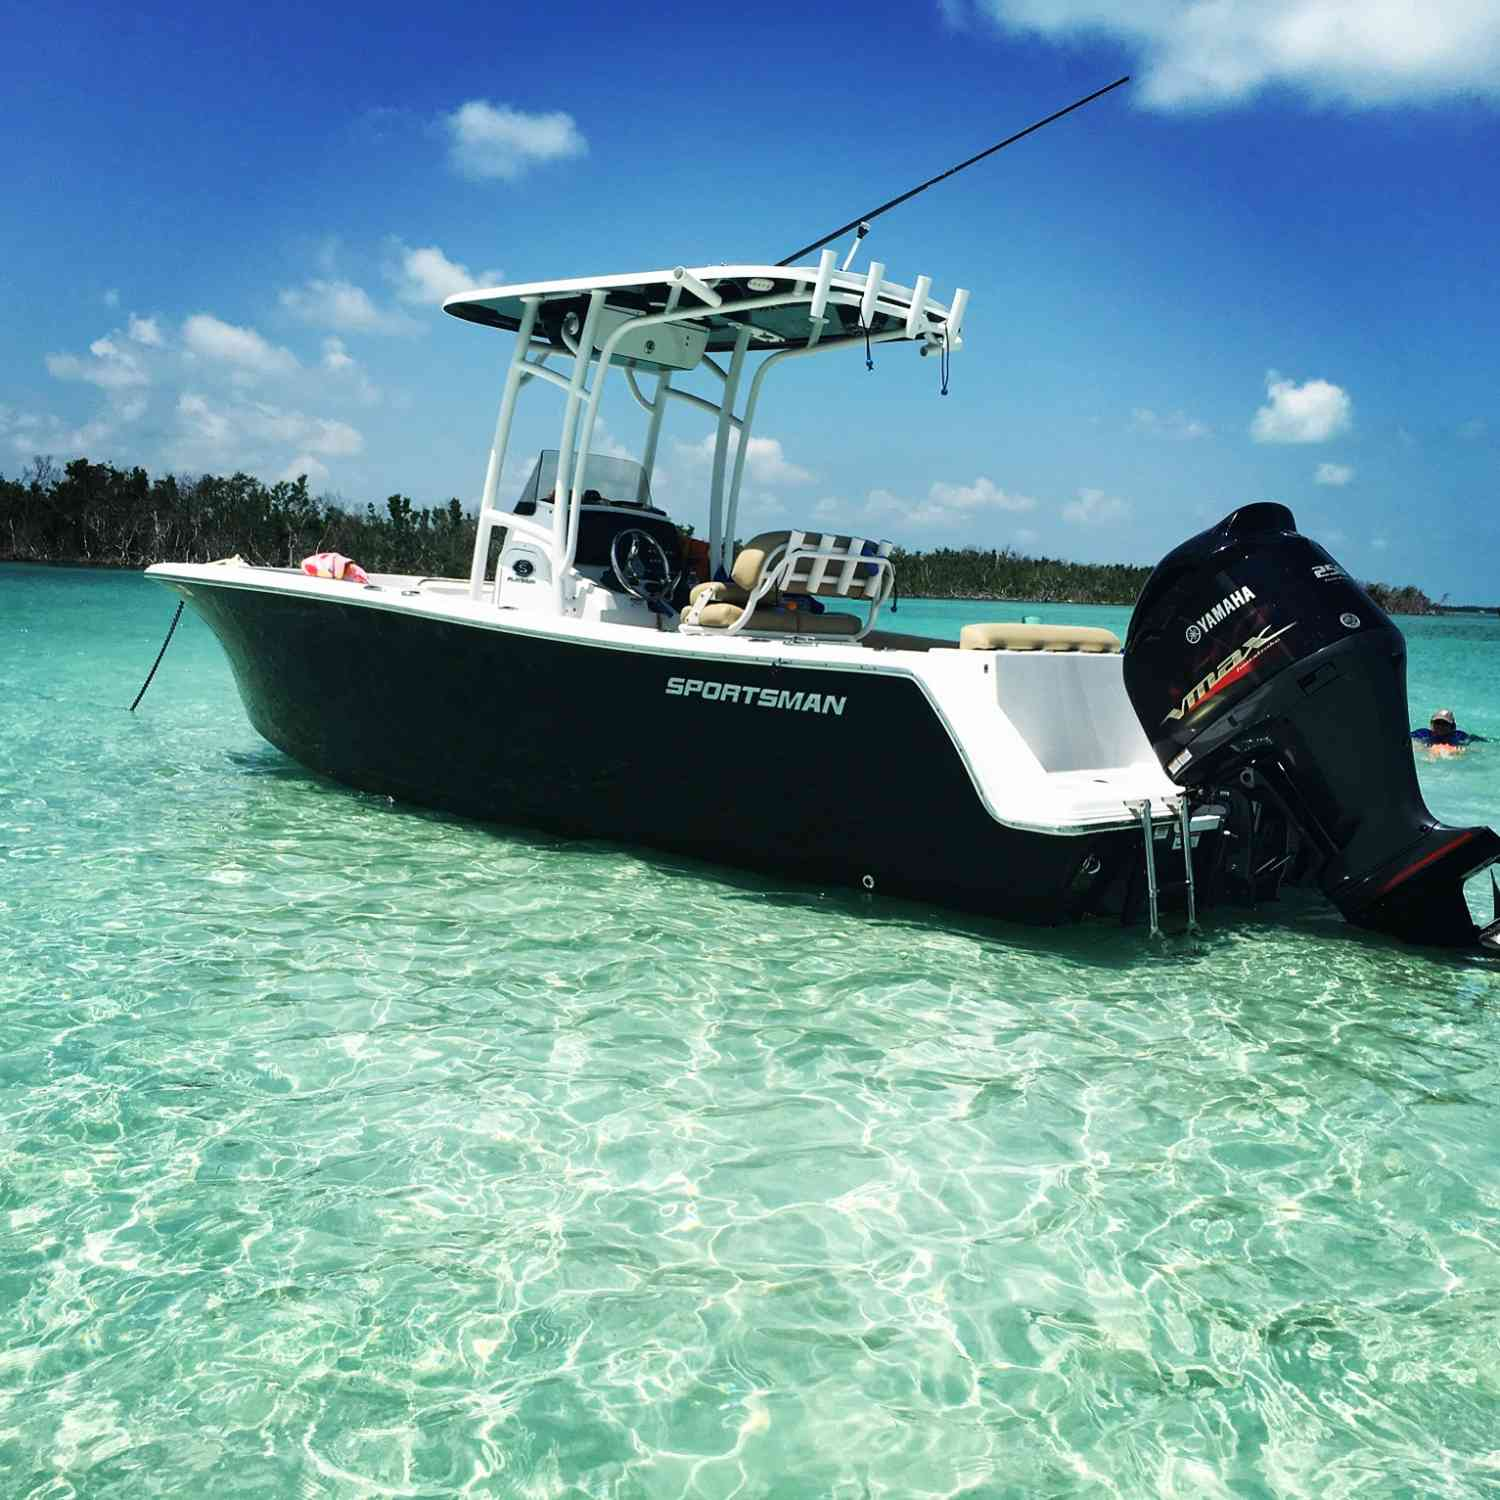 Title: Easy days - On board their Sportsman Open 232 Center Console - Location: Key west Fl. Participating in the Photo Contest #SportsmanAugust2018